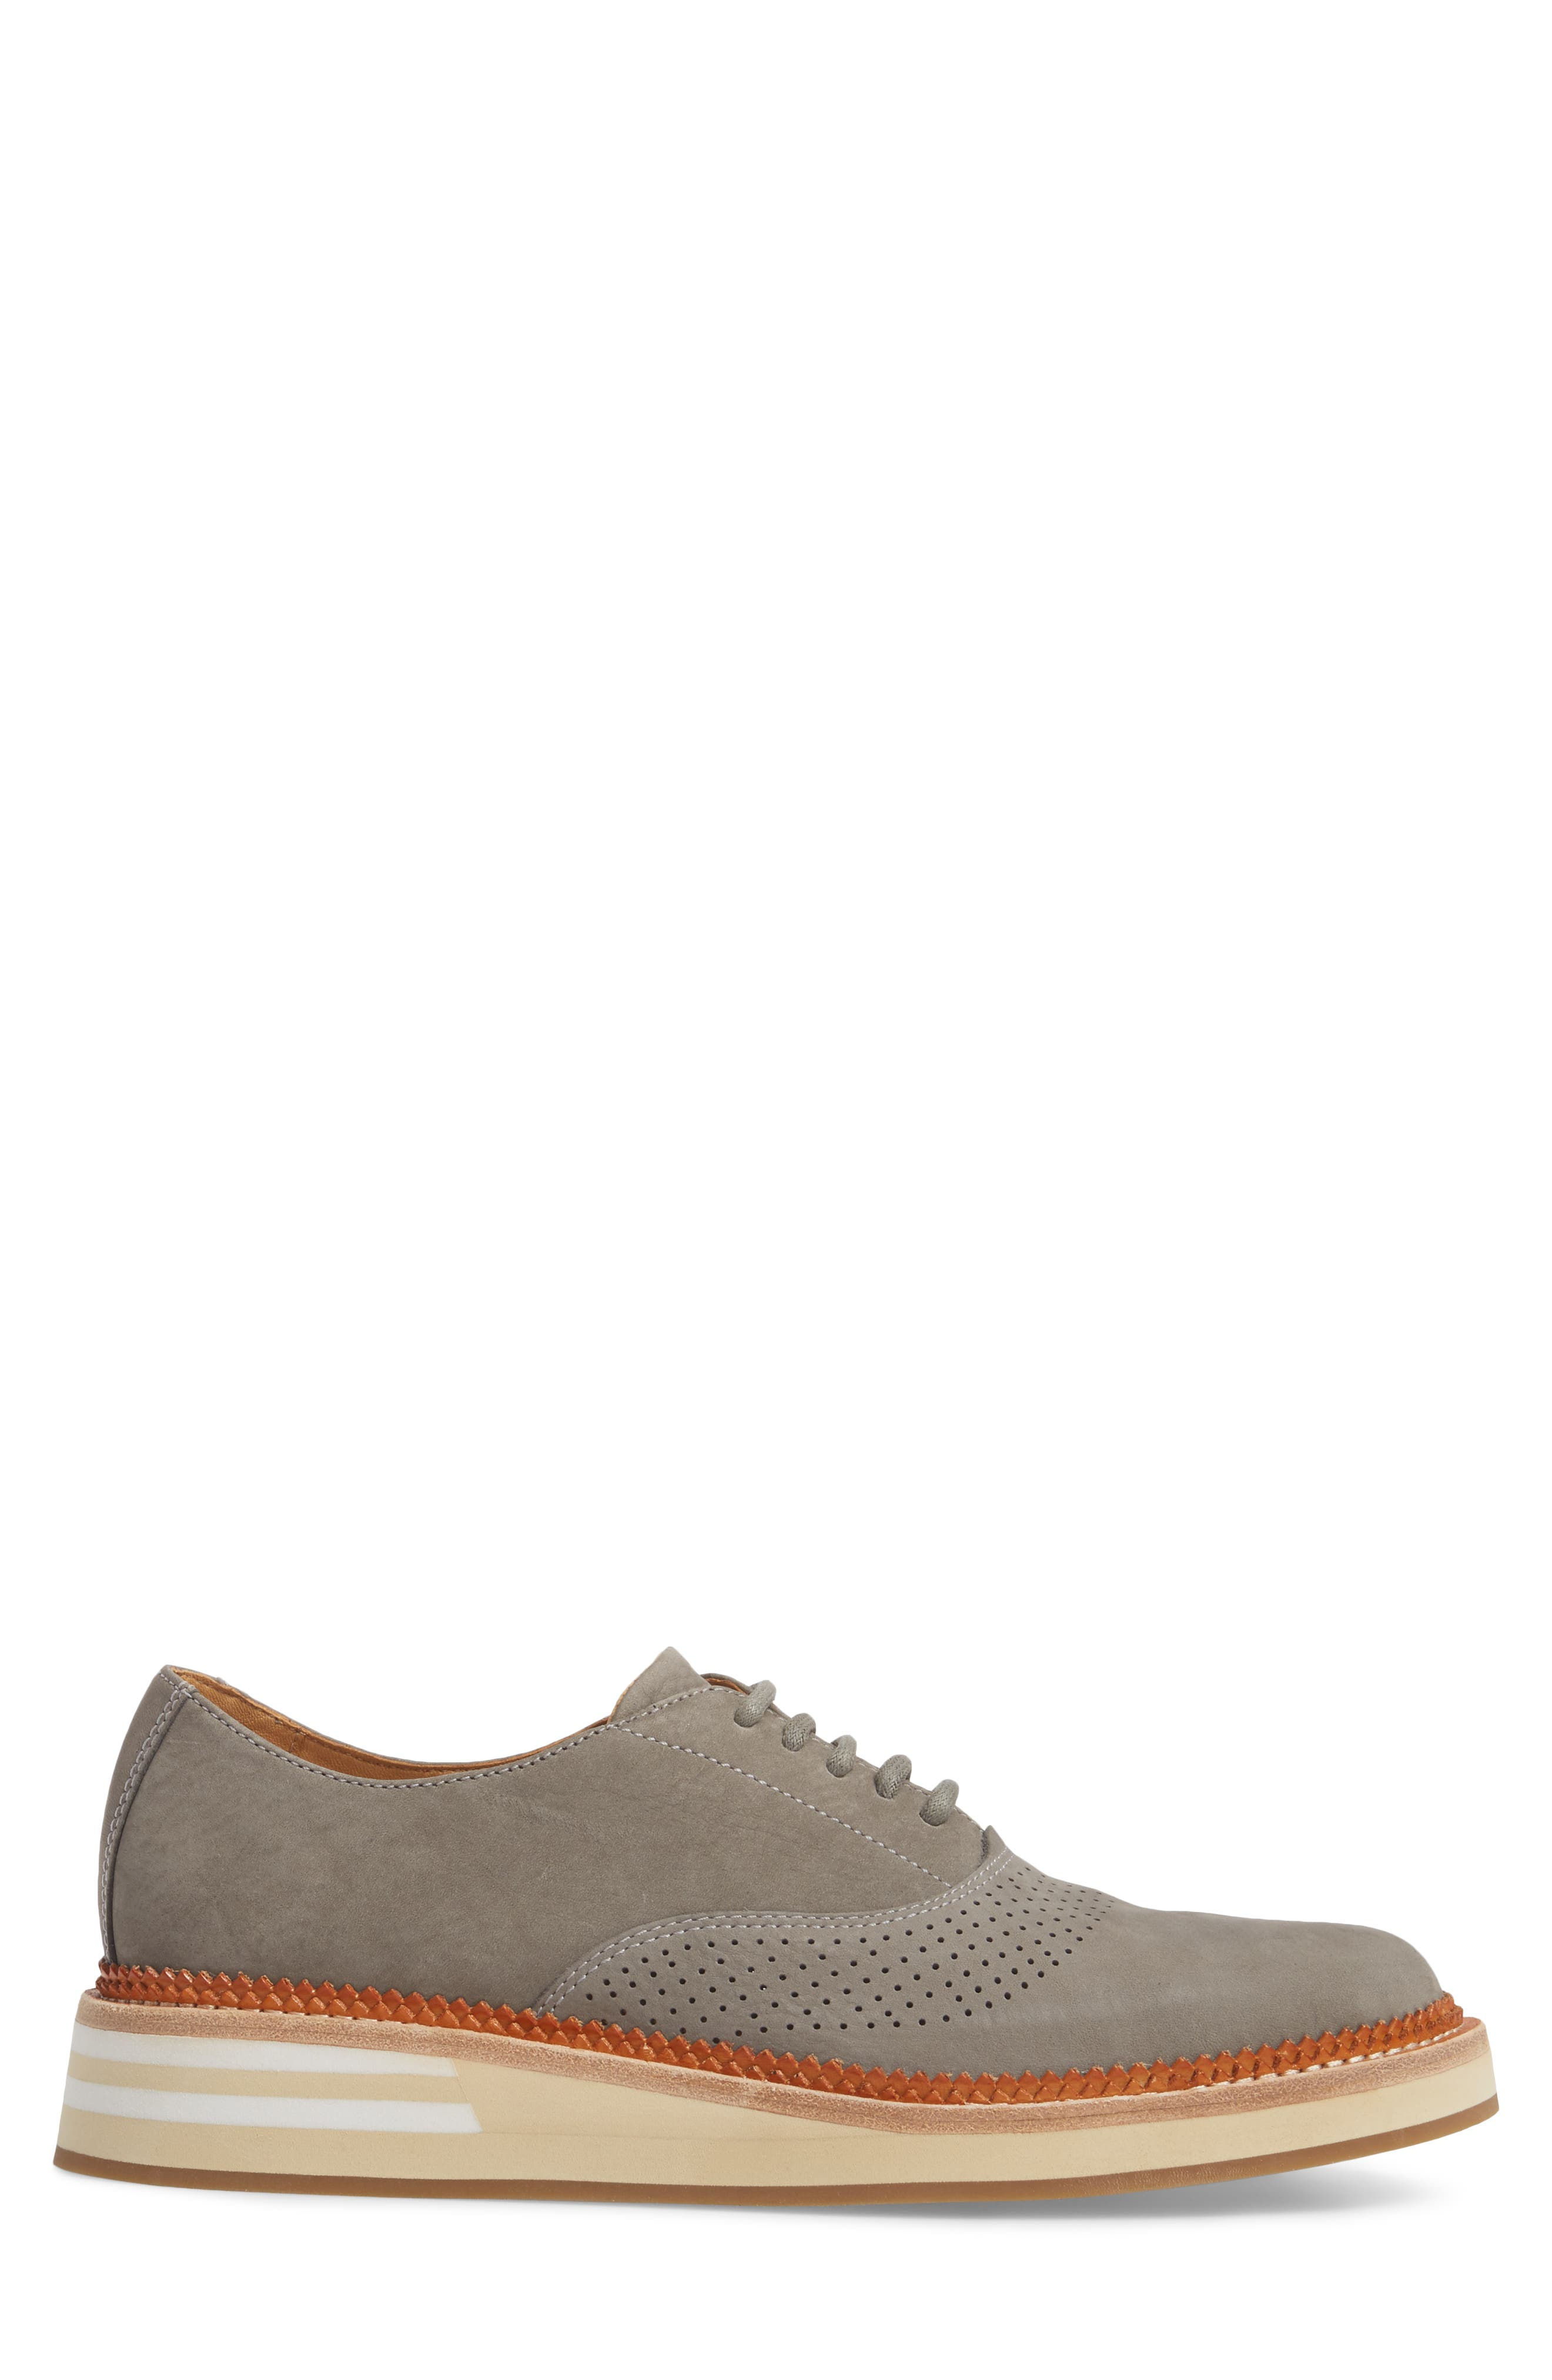 SPERRY, Cloud Perforated Oxford, Alternate thumbnail 3, color, GREY